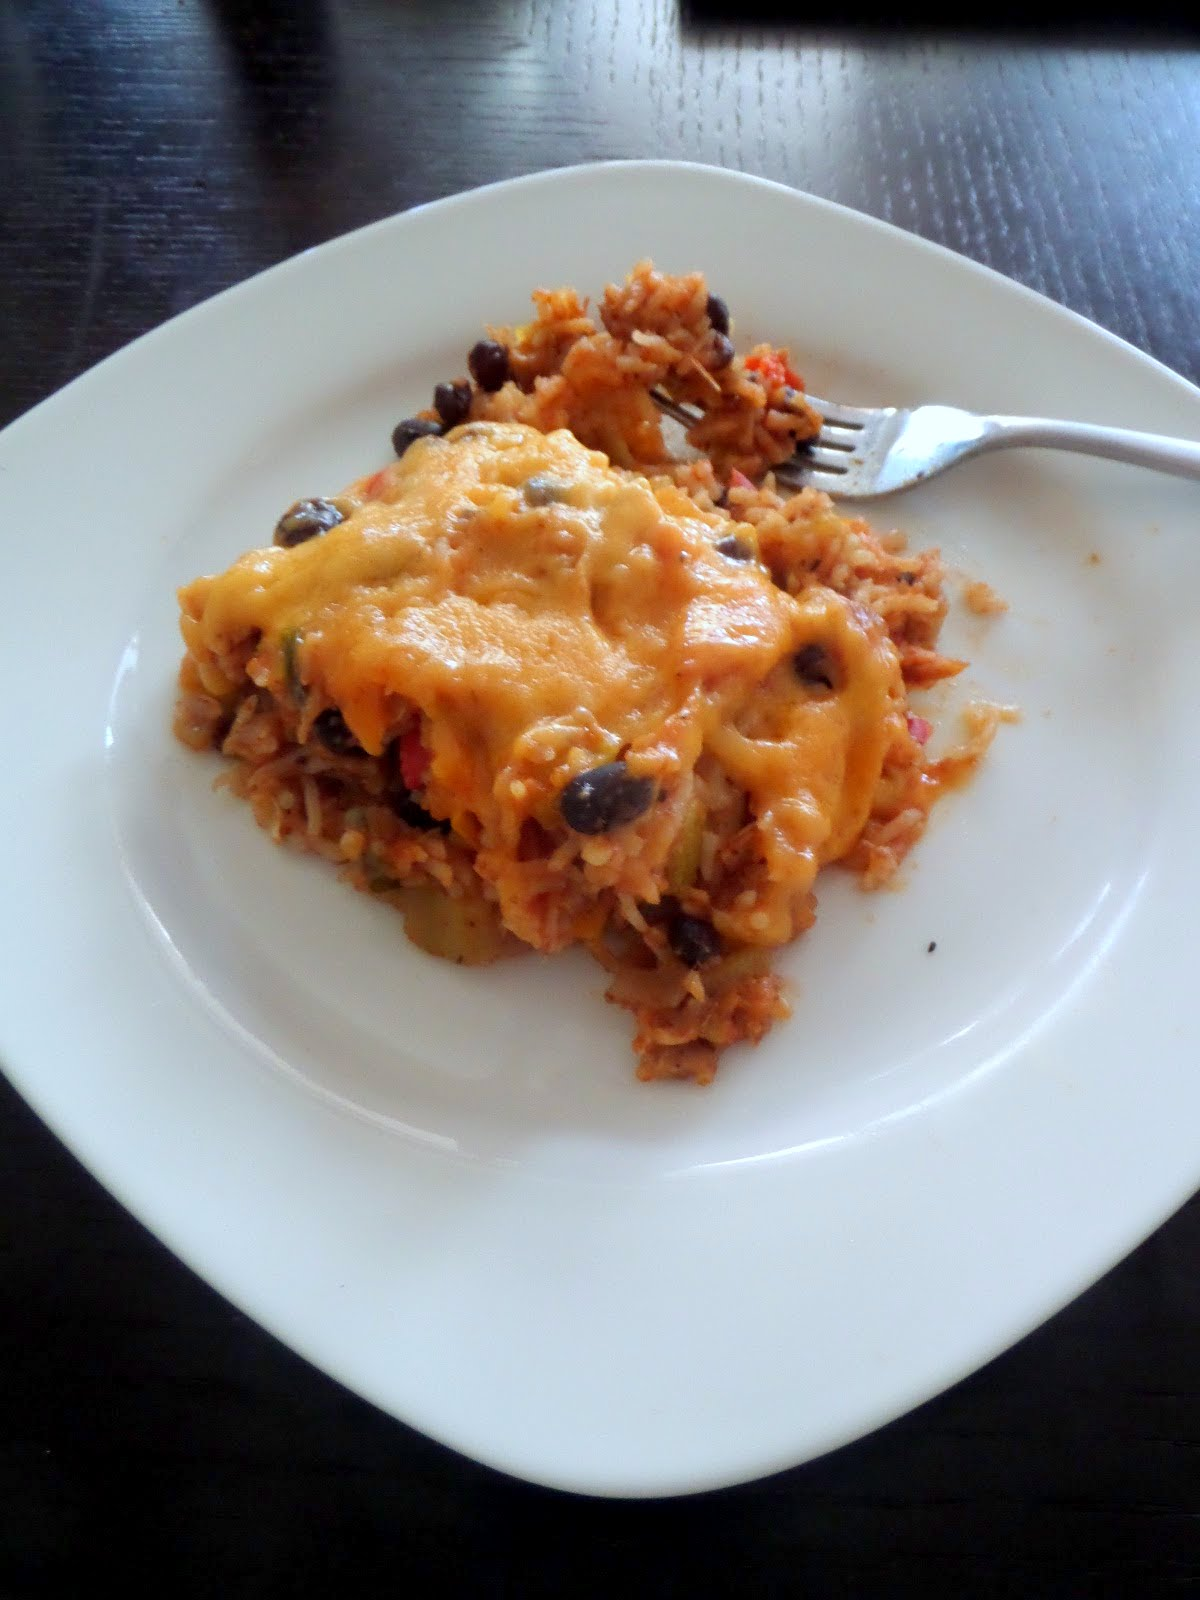 Unstuffed Pepper Casserole:  Stuffed peppers, unstuffed, and made into a casserole.